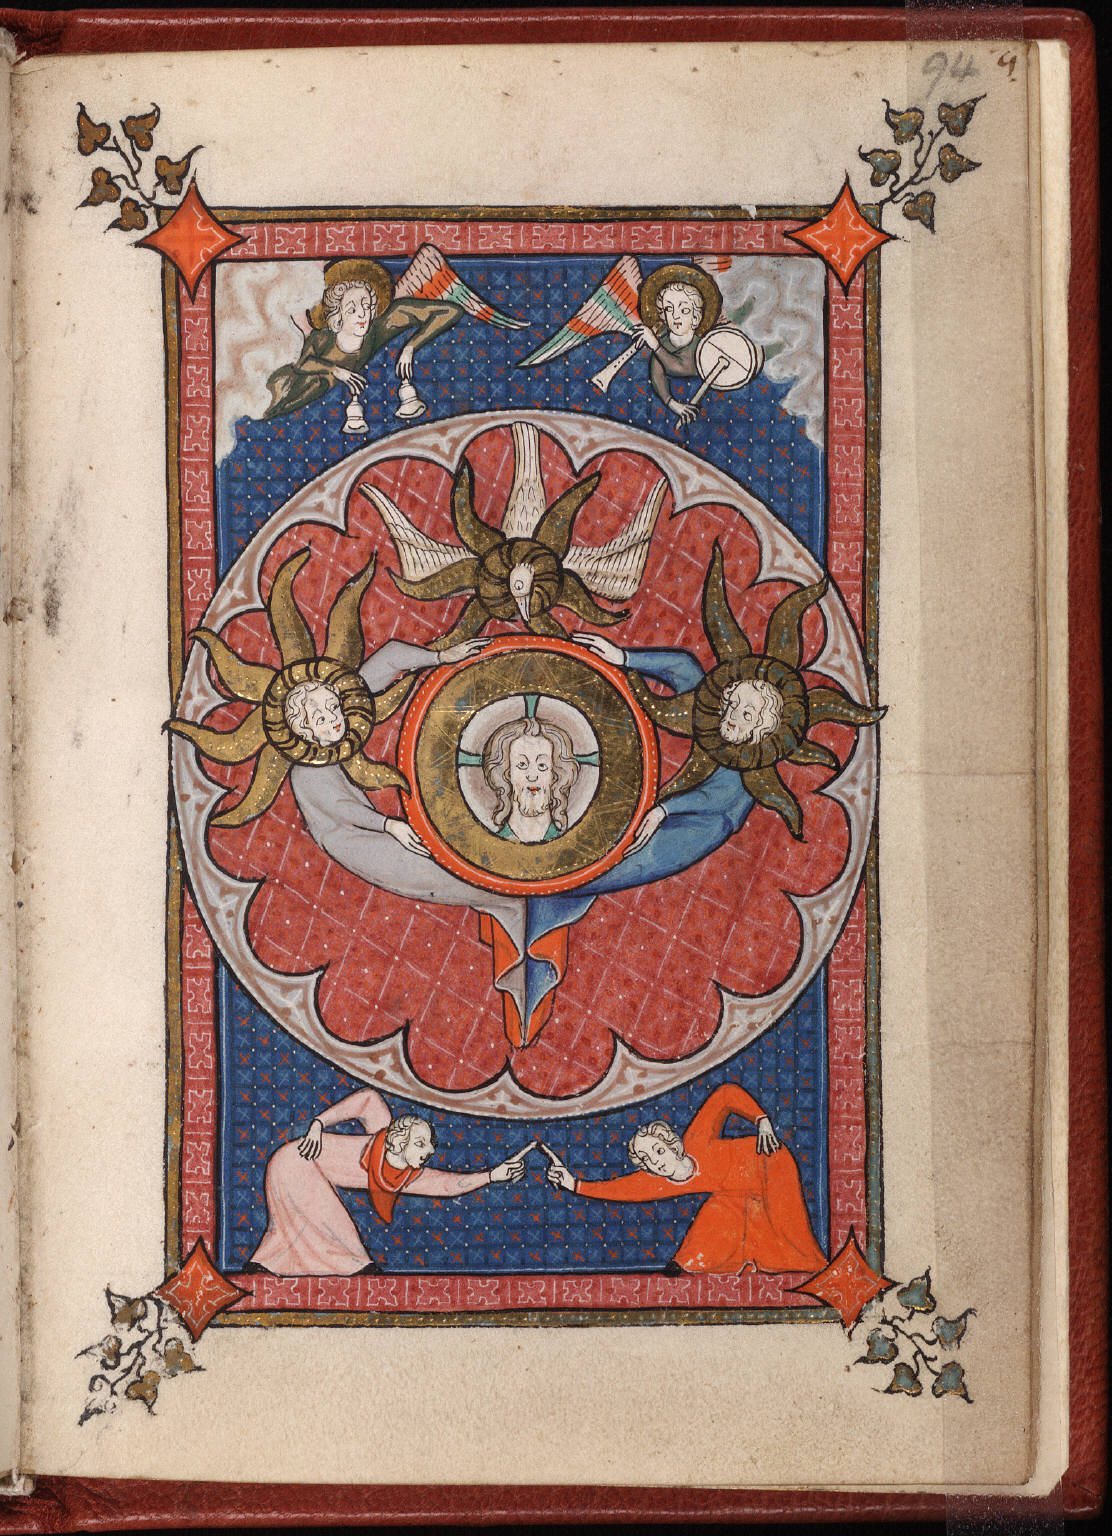 Rothschild Canticles 94r